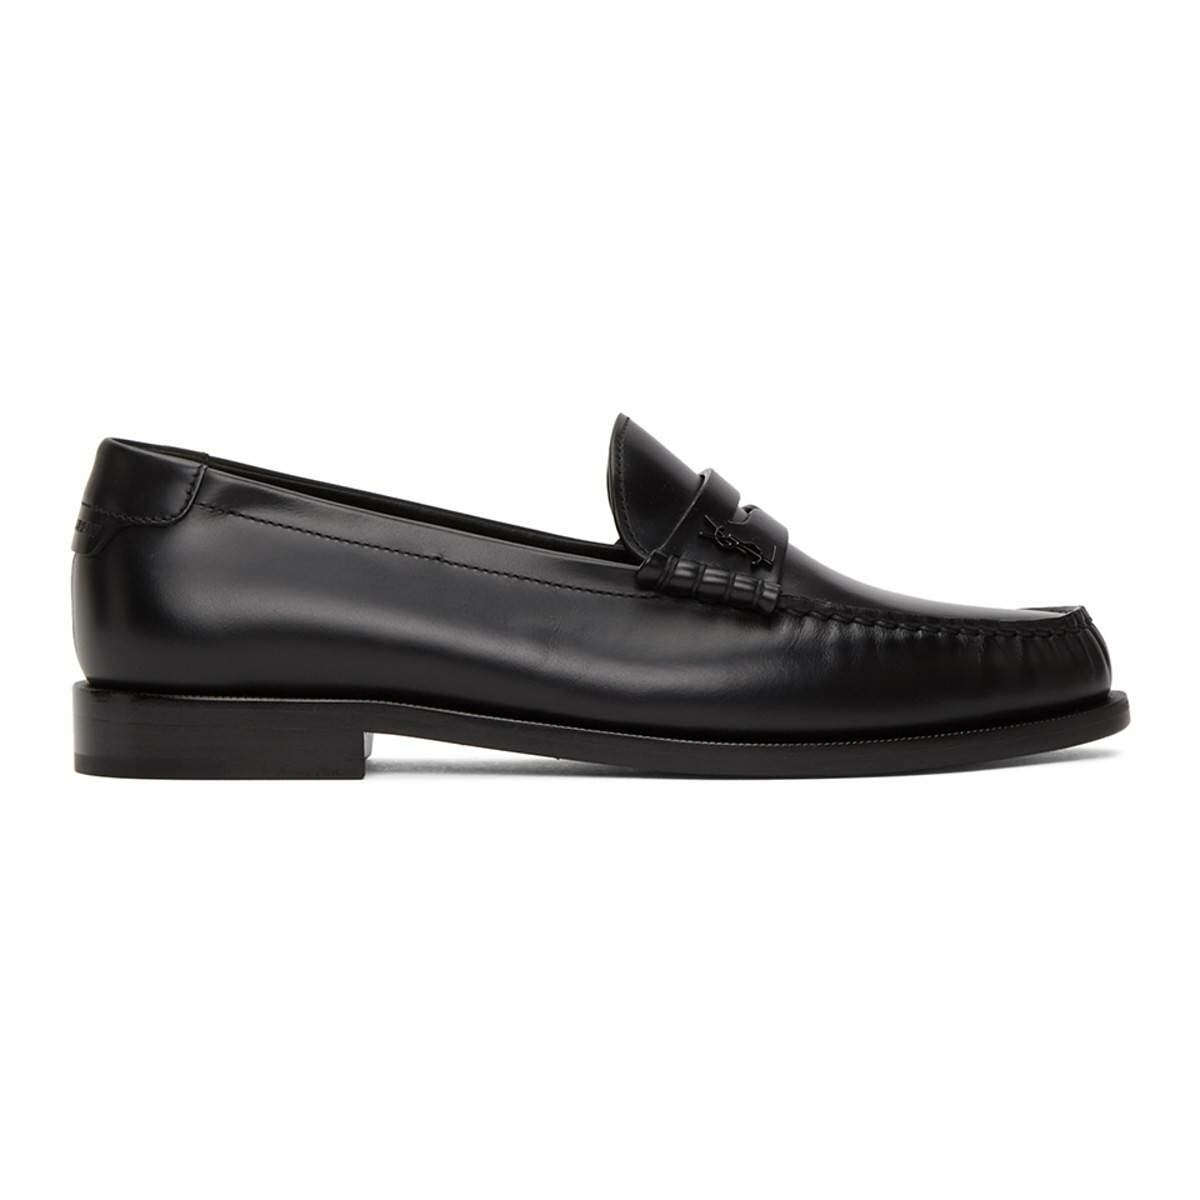 Saint Laurent Black Monogram Penny Slippers Ssense USA MEN Men SHOES Mens LOAFERS